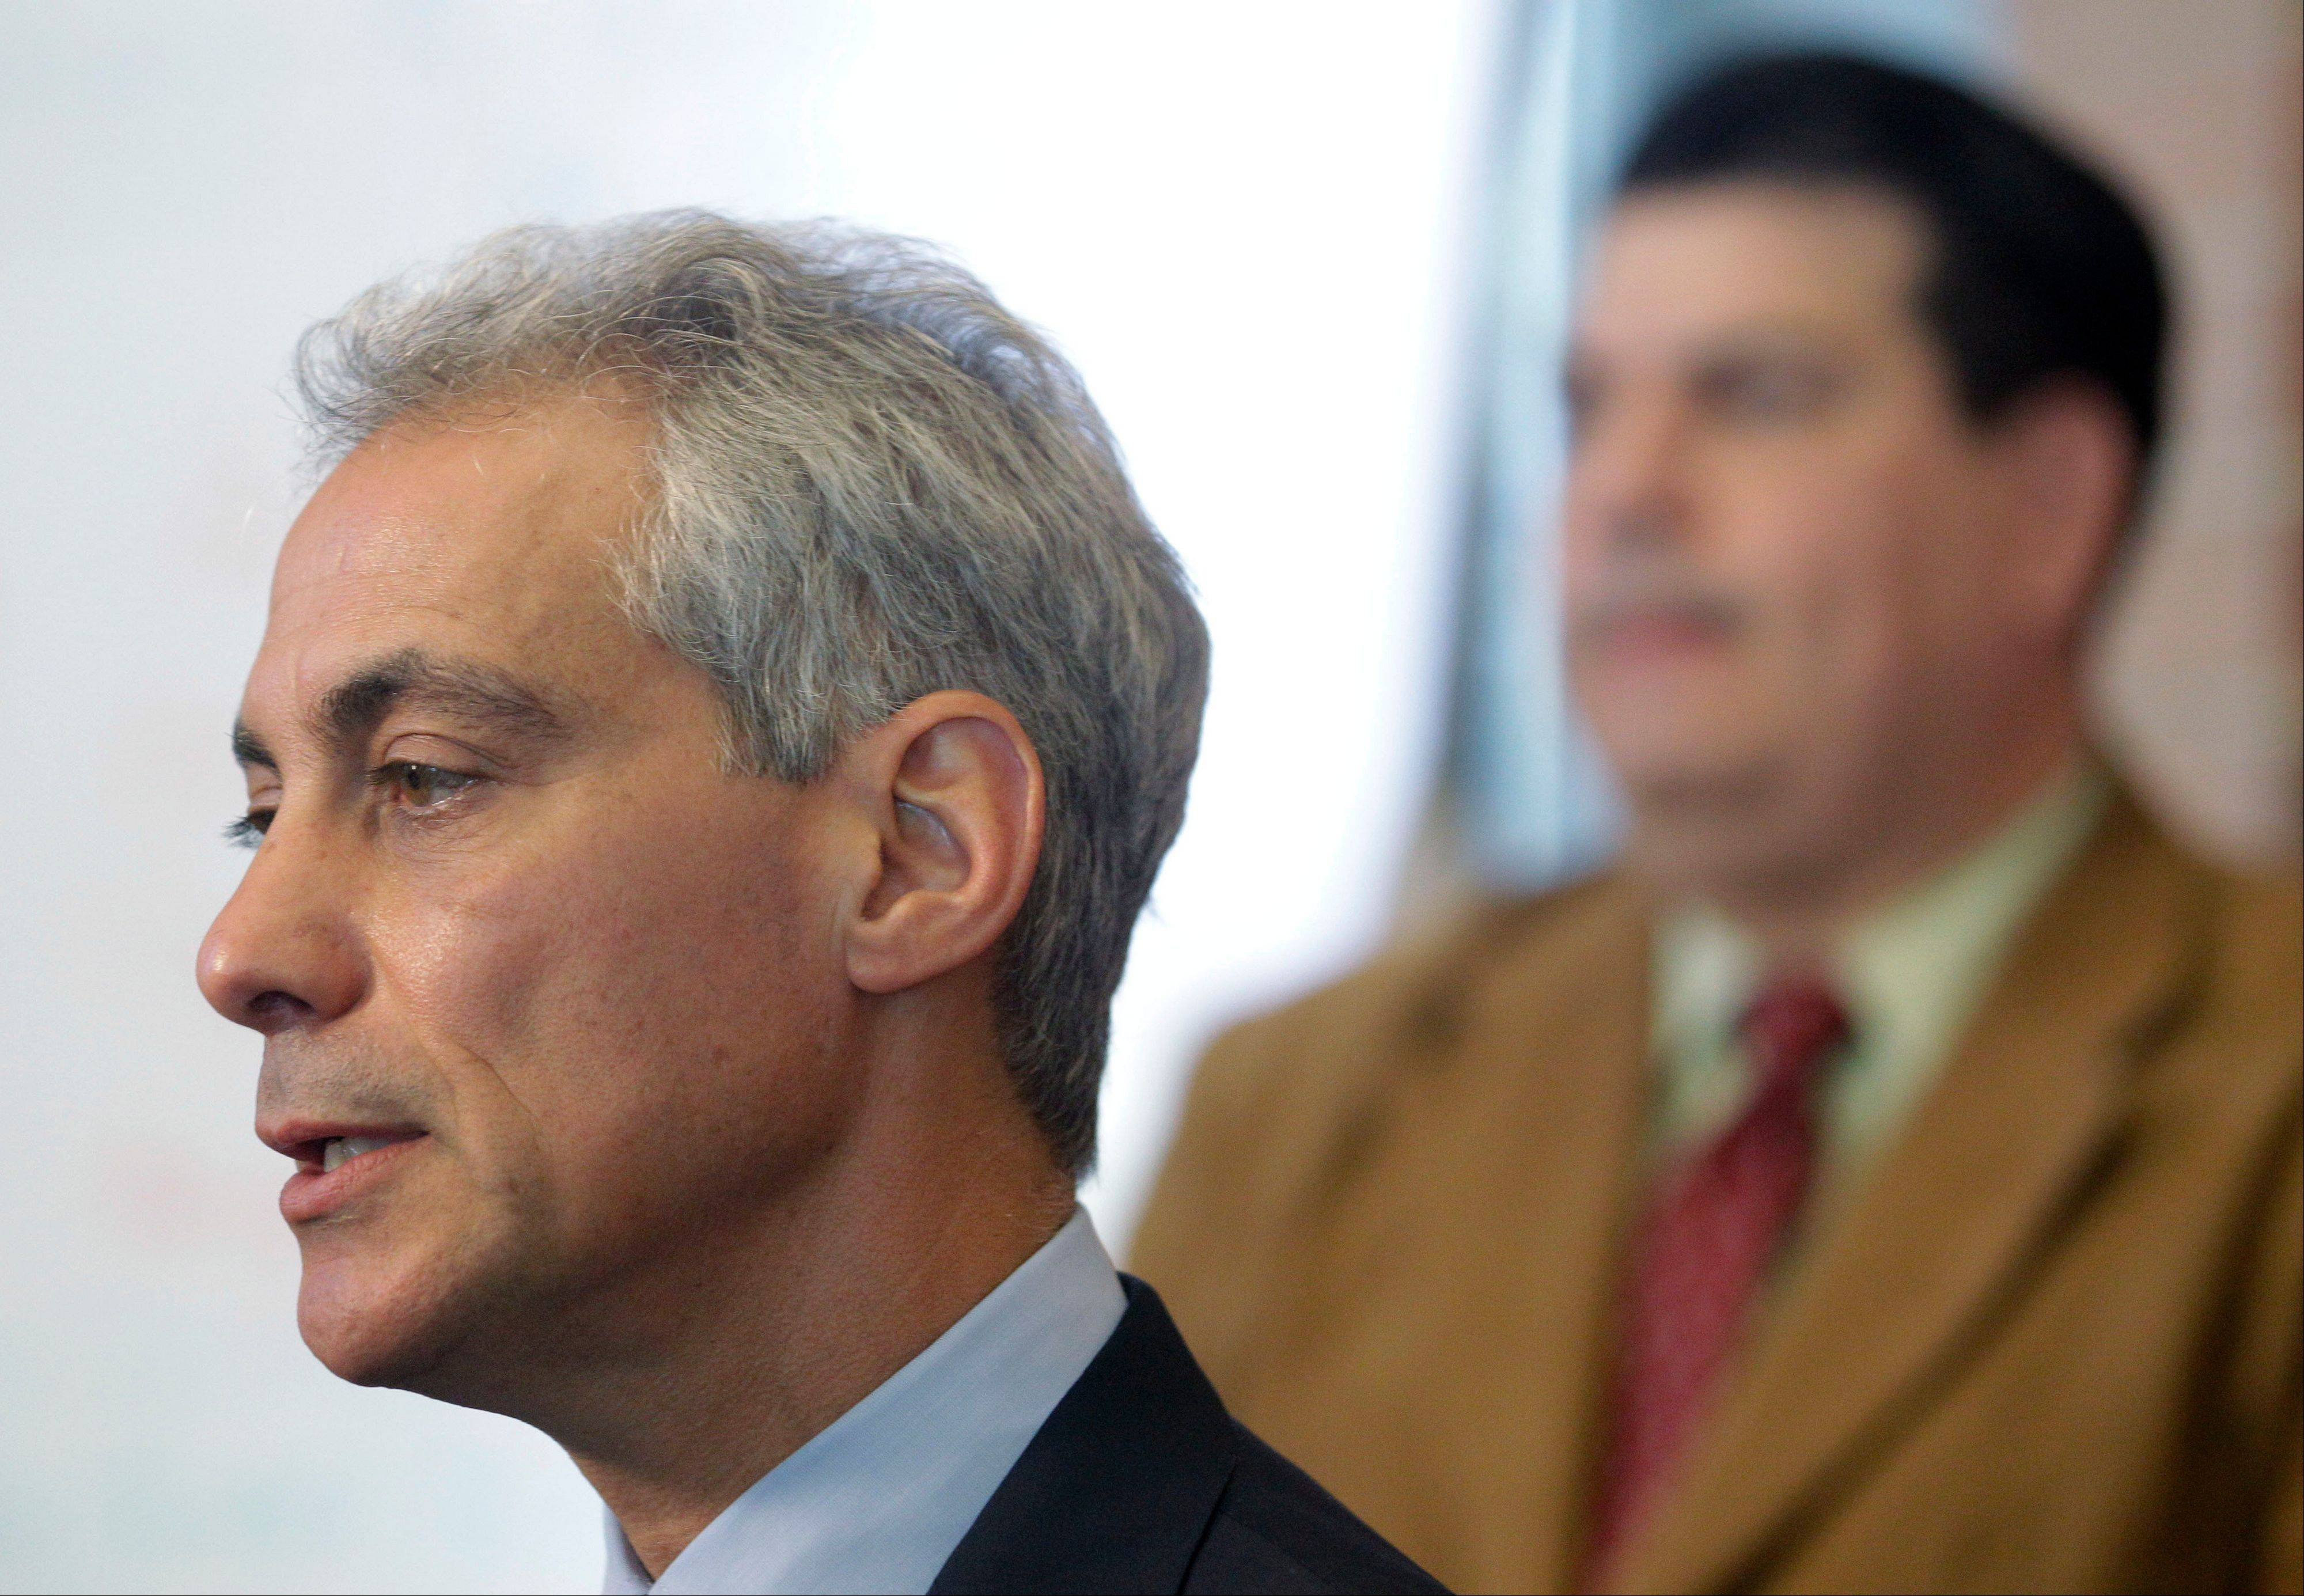 Chicago Mayor Rahm Emanuel speaks during a news conference at Tarkington School of Excellence in Chicago, Tuesday, Sept. 11, 2012 as Vincent Iturralde, right, principal at at Tarkington listens. Negotiations continue on the second day of a strike in the nation's third-largest school district, as the two sides continue to struggle to reach an agreement in a bitter contract dispute over evaluations and job security.